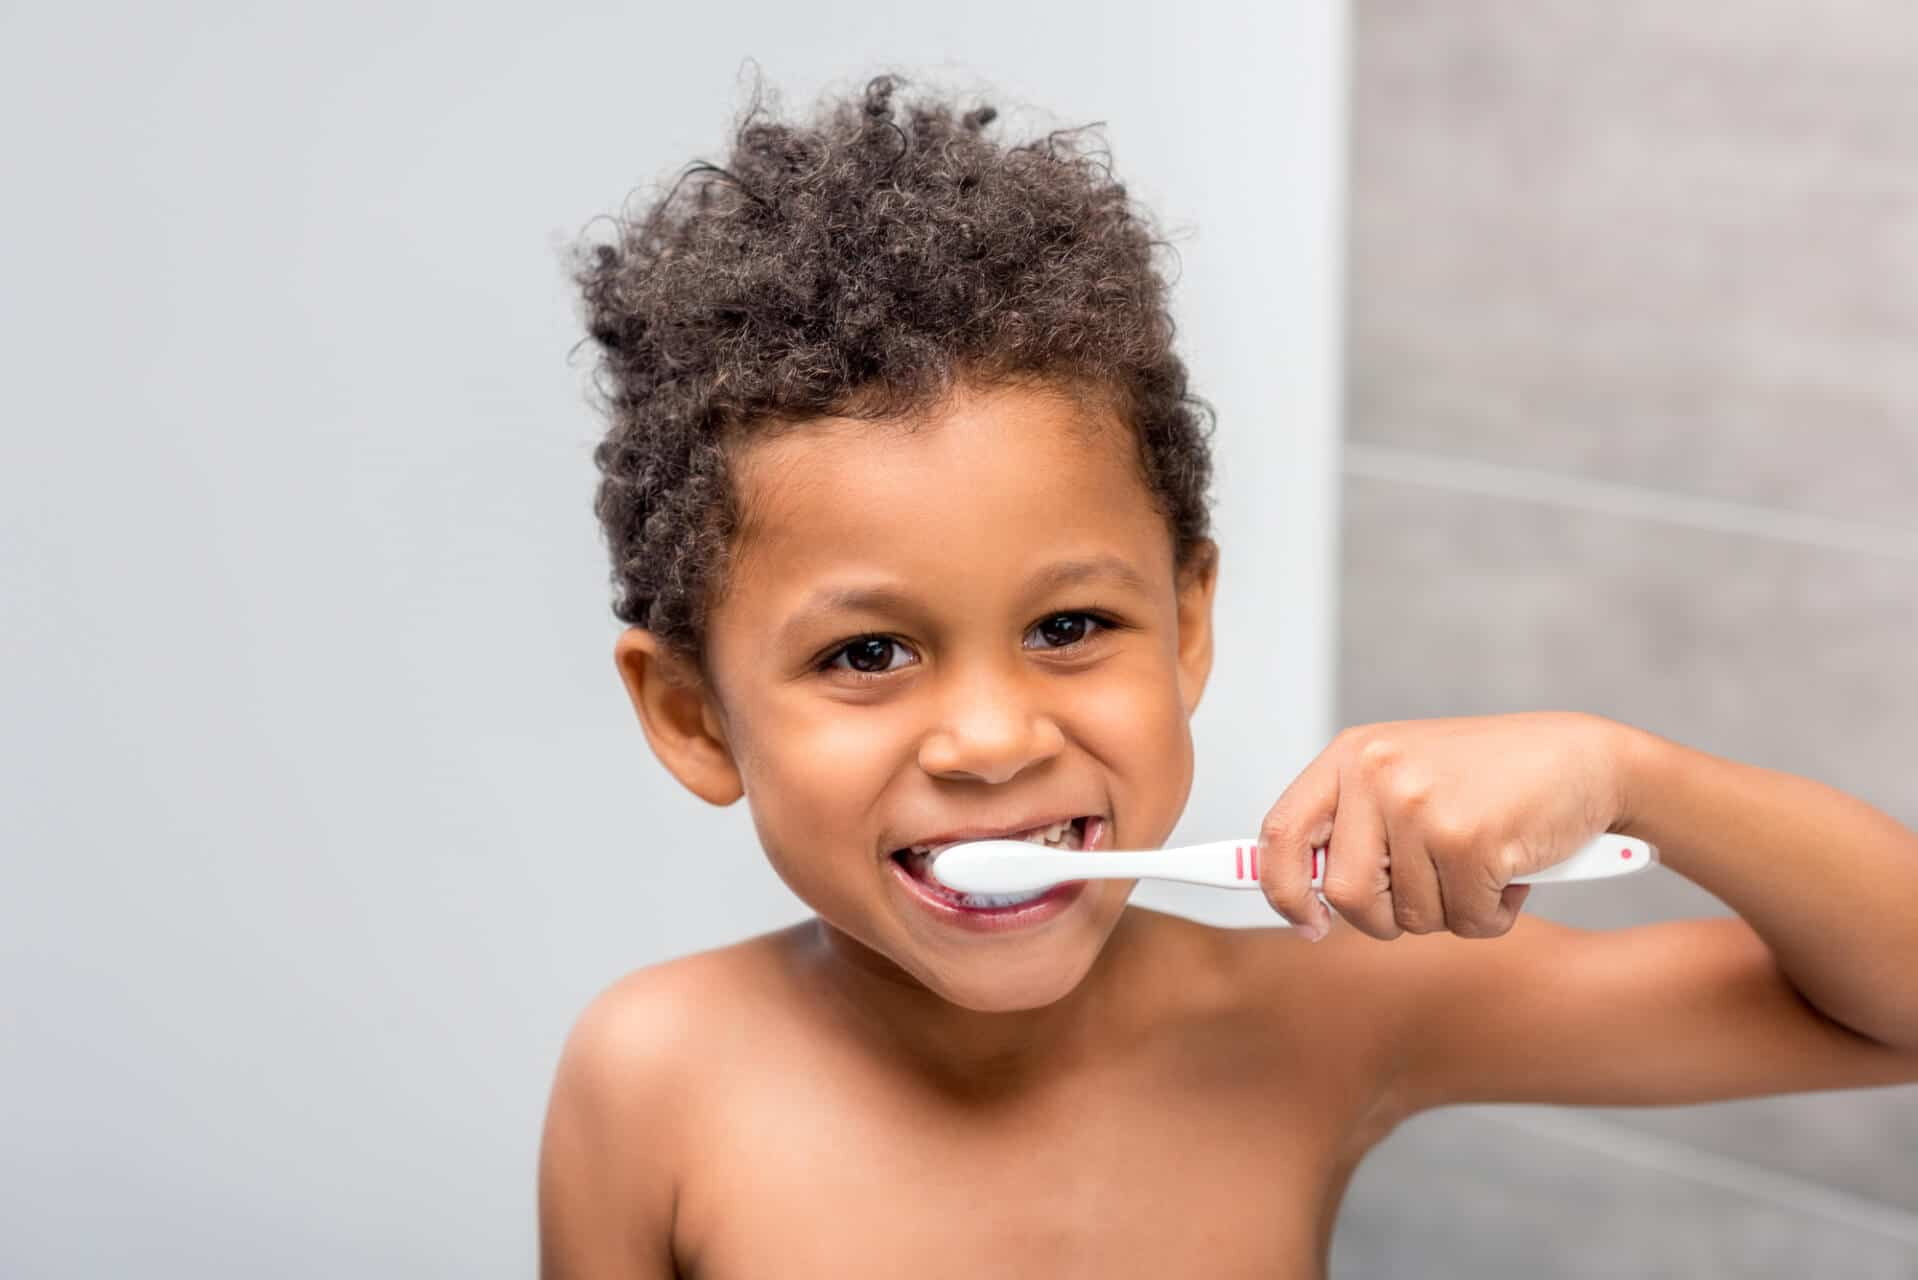 Where can I find a pediatric dentist in boca raton?